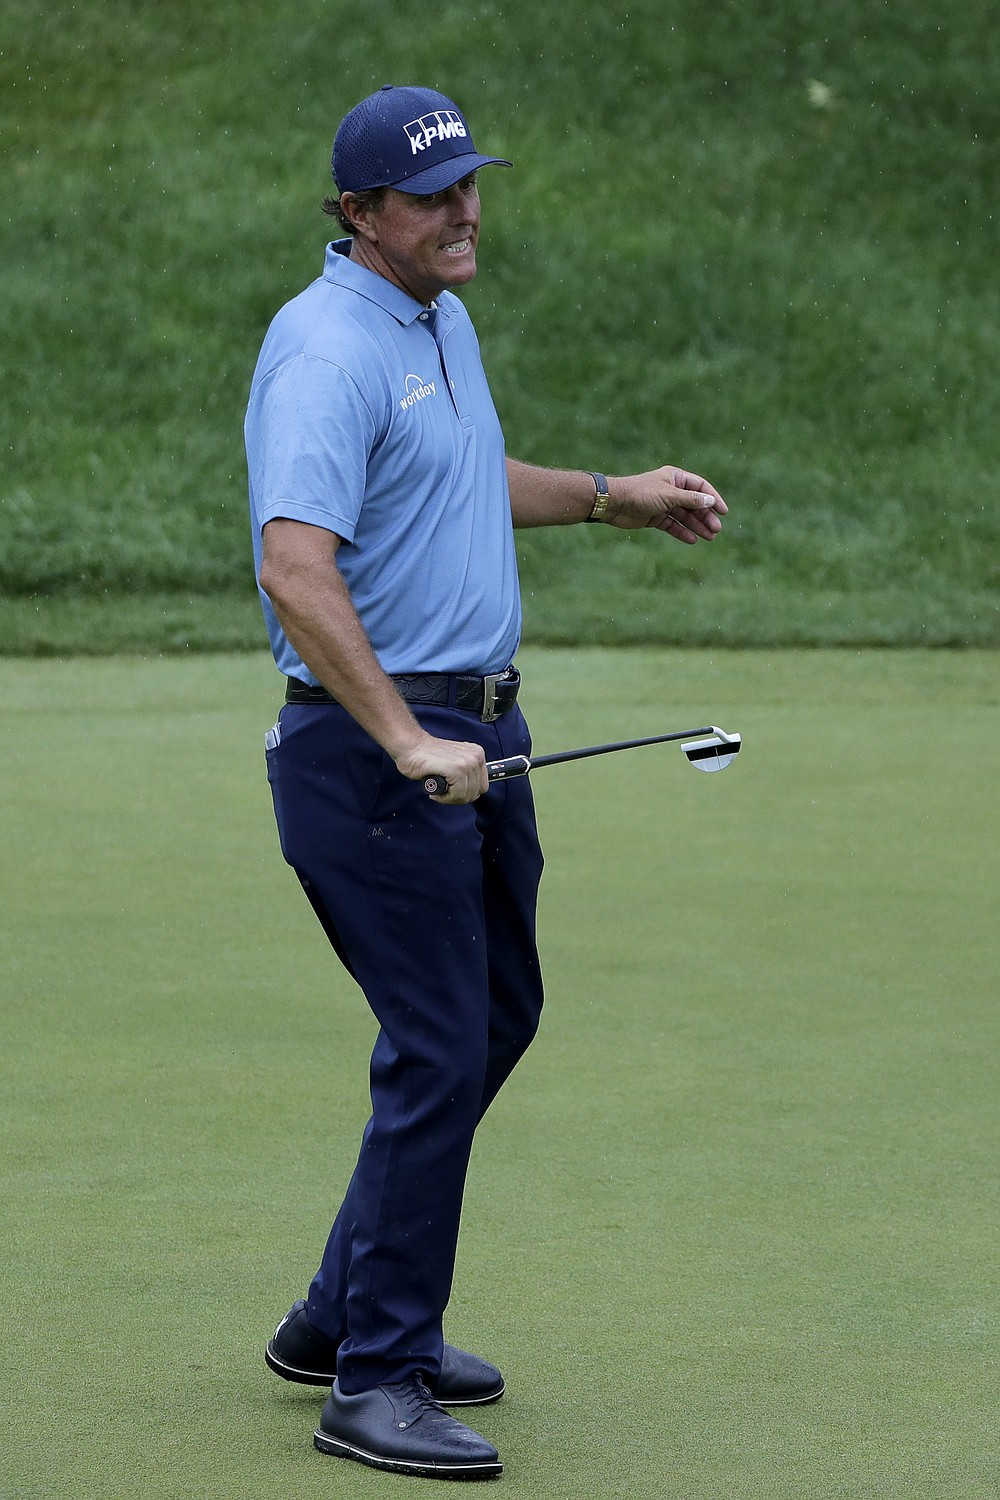 Phil Mickelson reacts after missing a putt on the 18th green during the third round of the Travelers Championship golf tournament at TPC River Highlands, Saturday, June 27, 2020, in Cromwell, Conn. (AP Photo/Frank Franklin II)